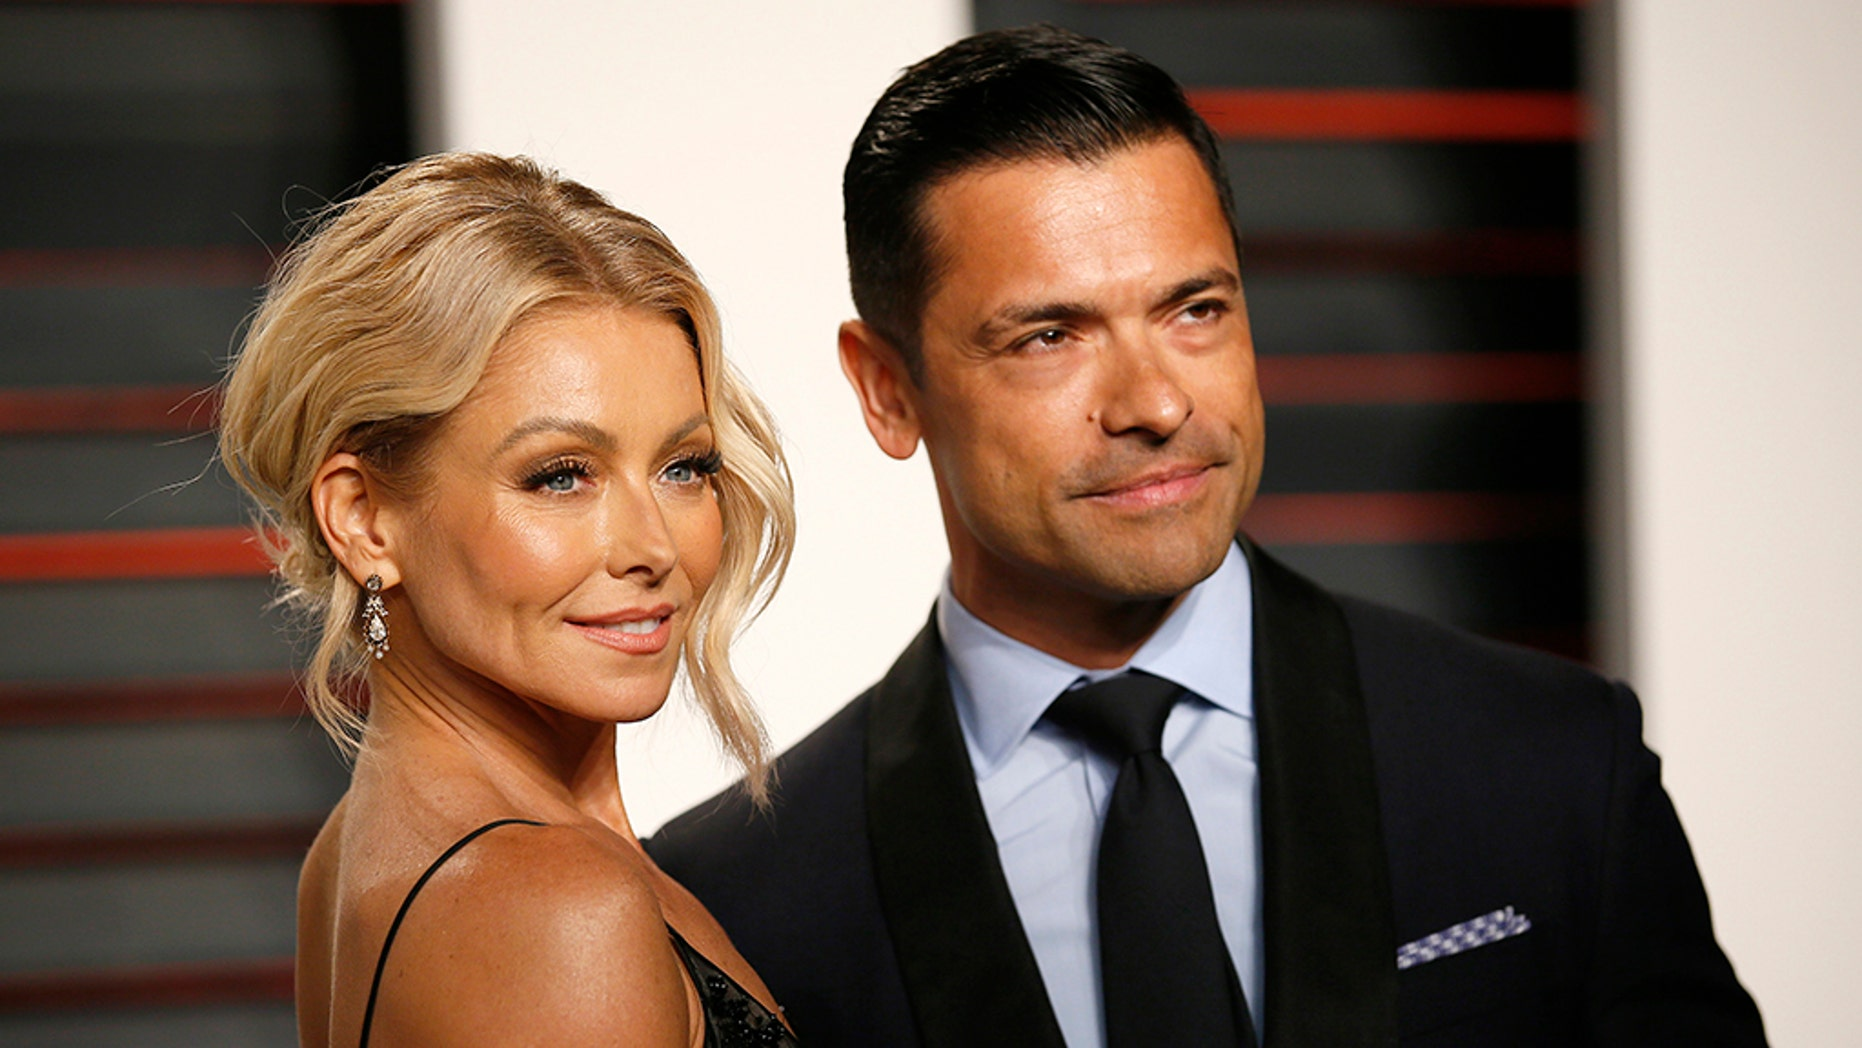 Kelly Ripa left a flirty message on one of her husband Mark Conseulos' recent Instagram posts.